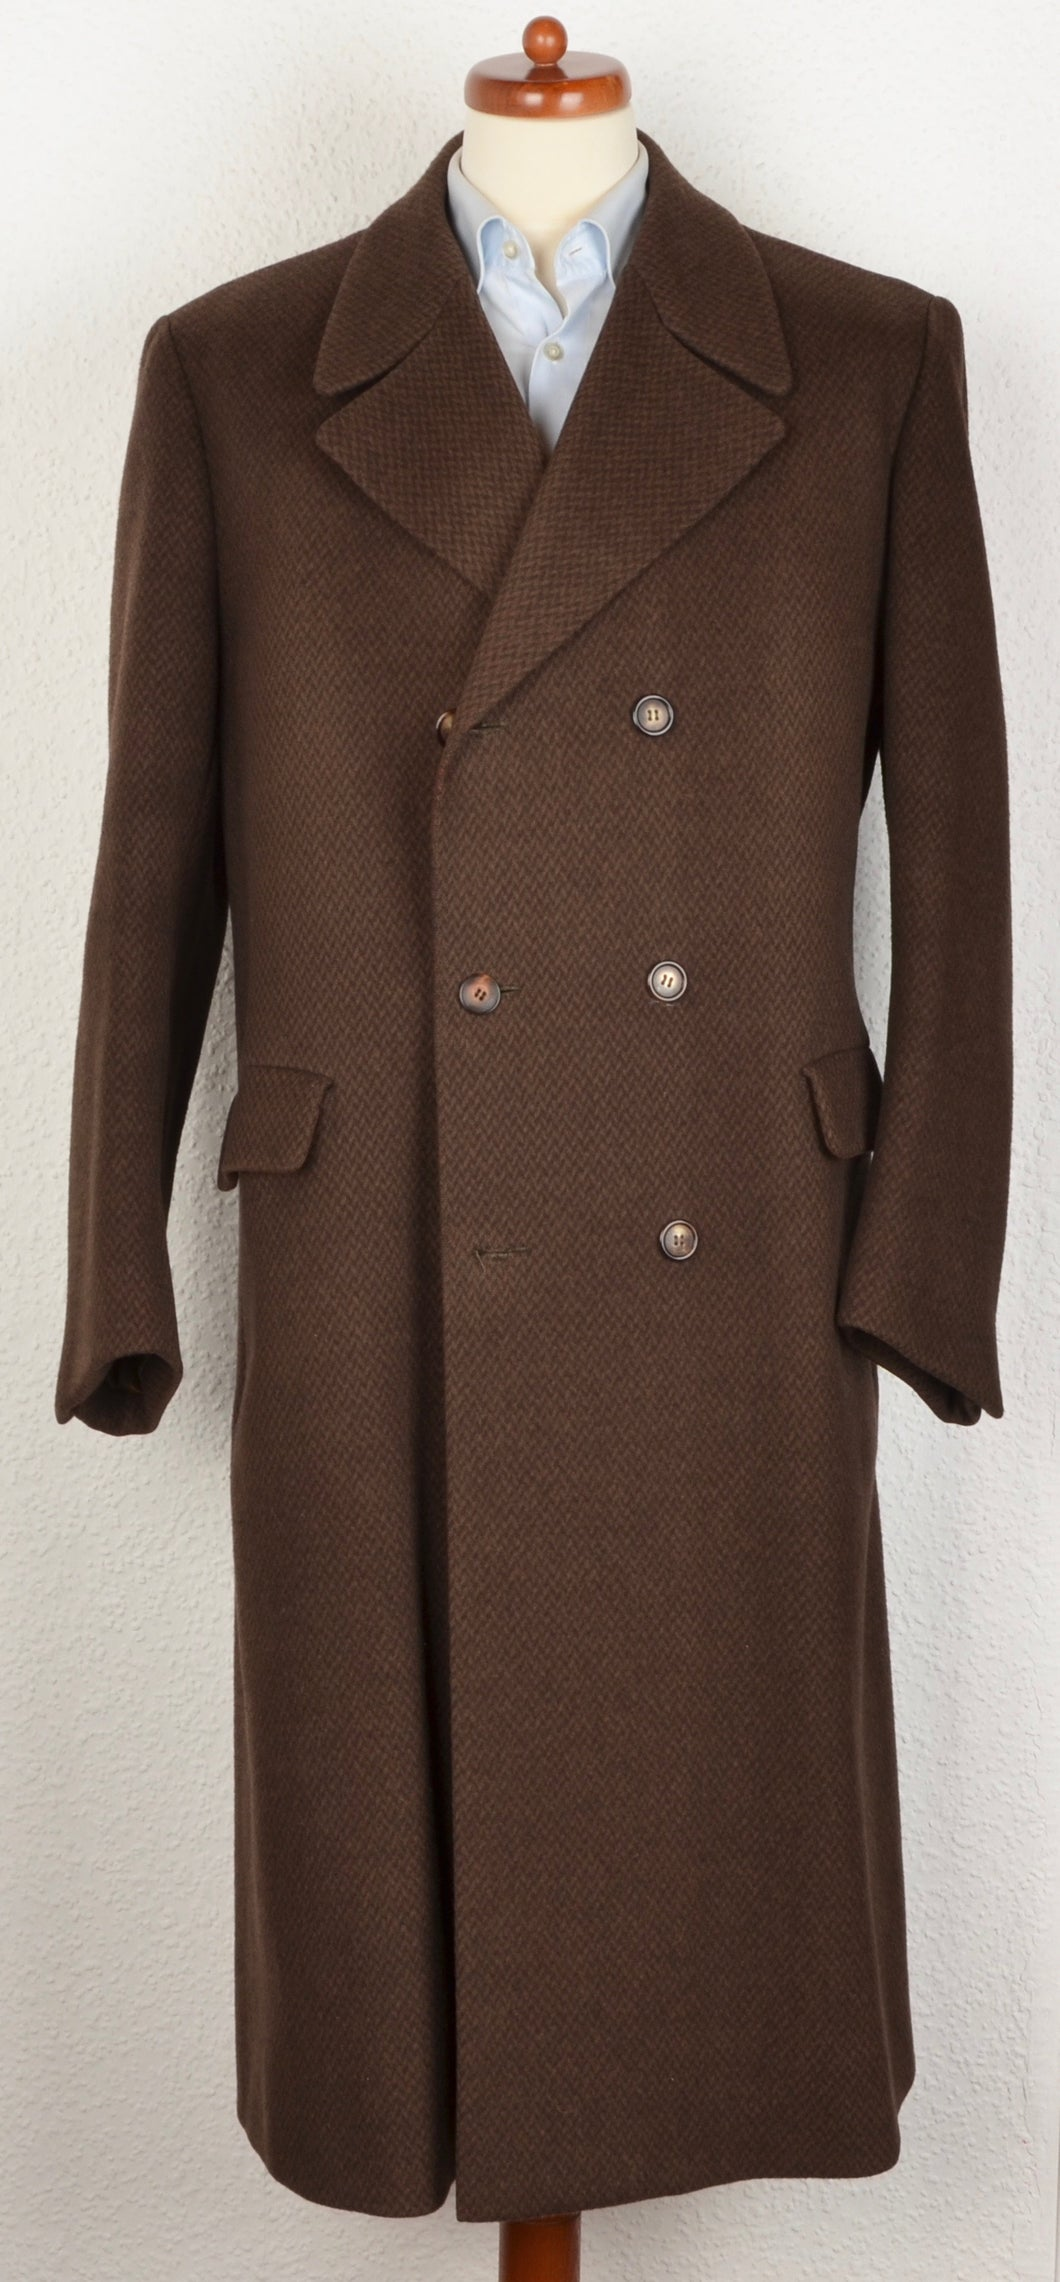 Anonymous Handmade Double-Breasted Overcoat - Brown Chevron